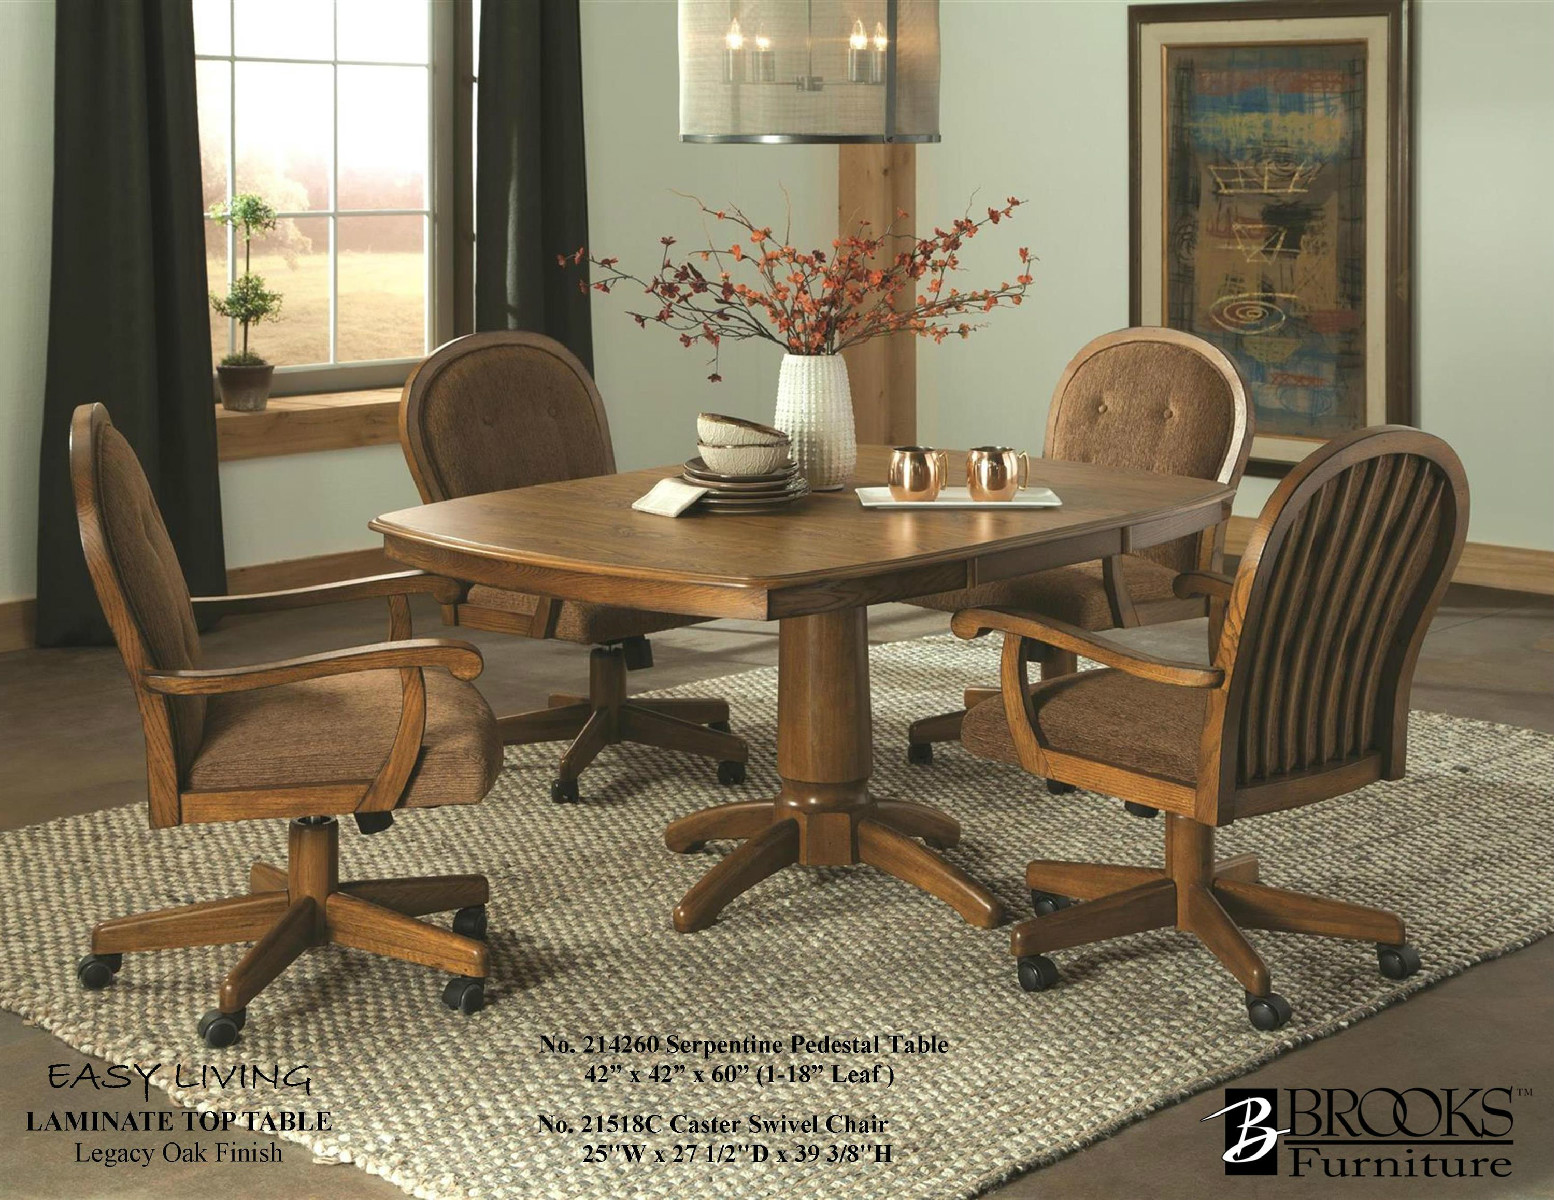 214620 Brooks Laminate Table 21518C Roller Chairs Legacy Oak Finish